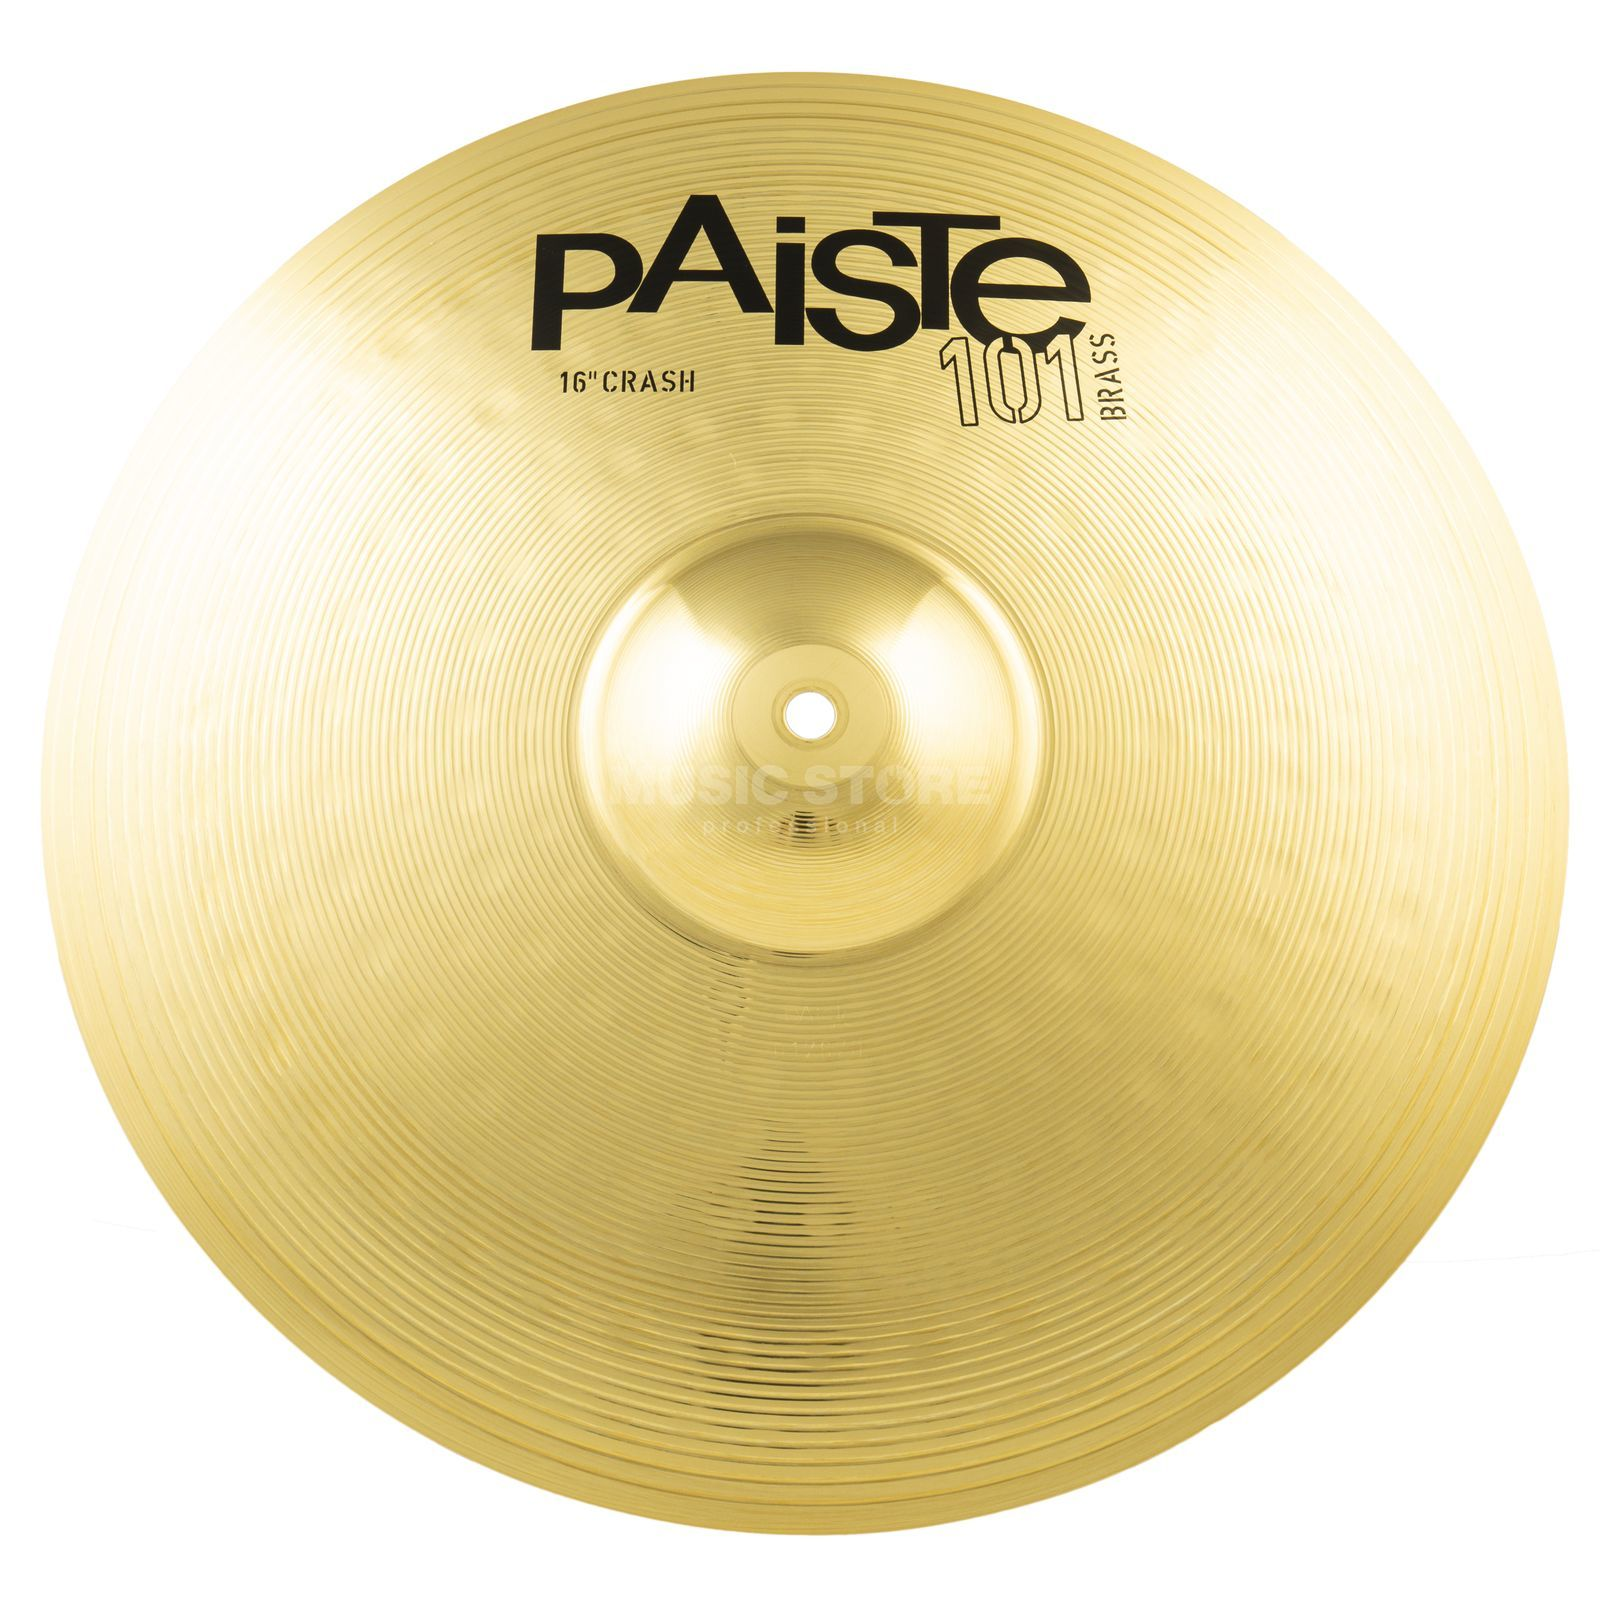 "Paiste 101 Brass Crash 16""  Produktbillede"